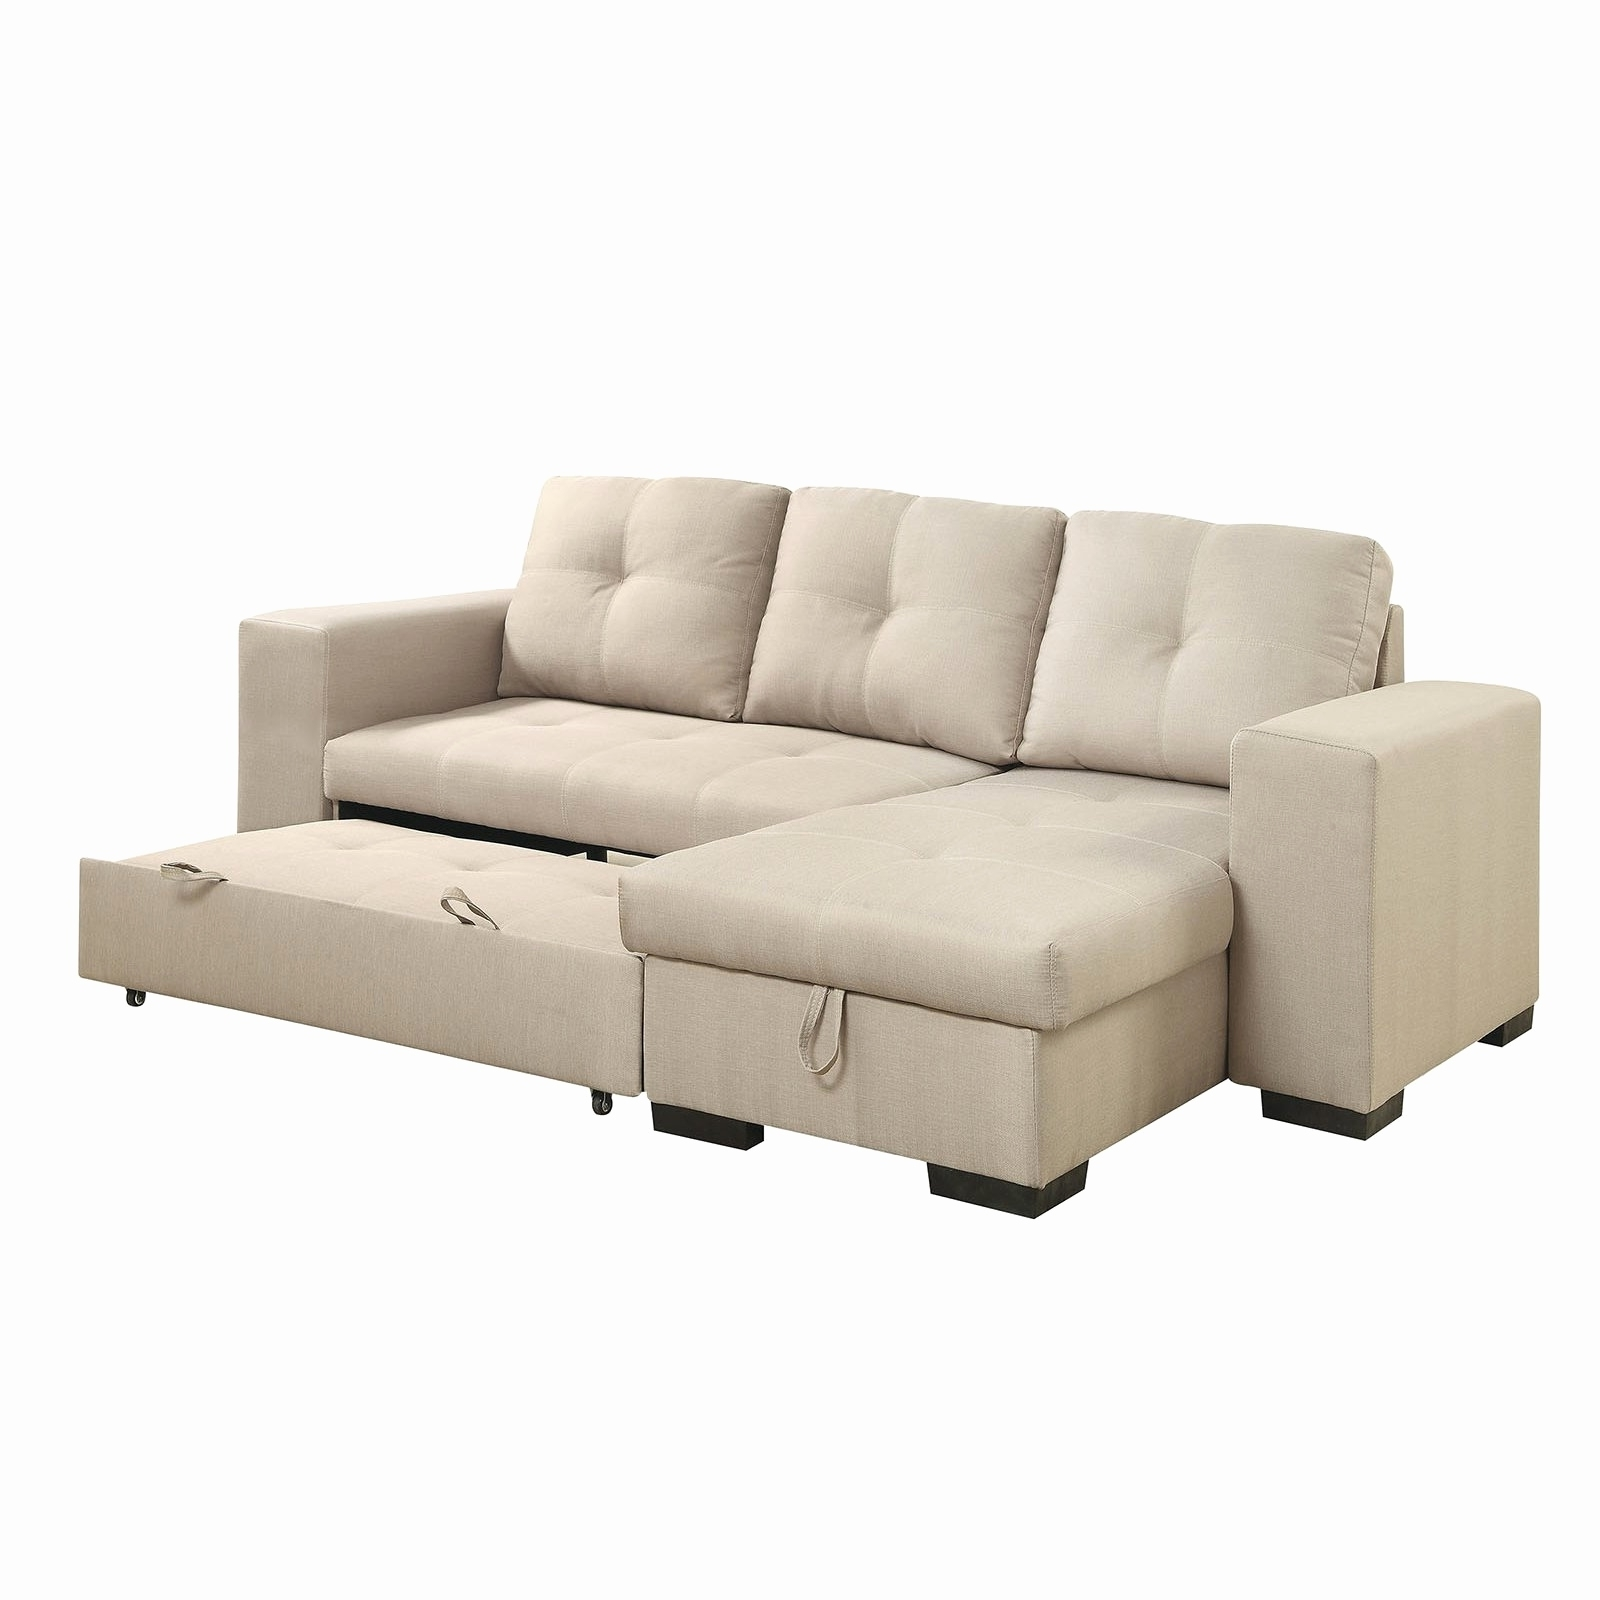 Chaise Lounge Sleepers For Most Current Sofa : Leather Sleeper Sofa With Chaise Best Of Chaise Lounge (View 5 of 15)